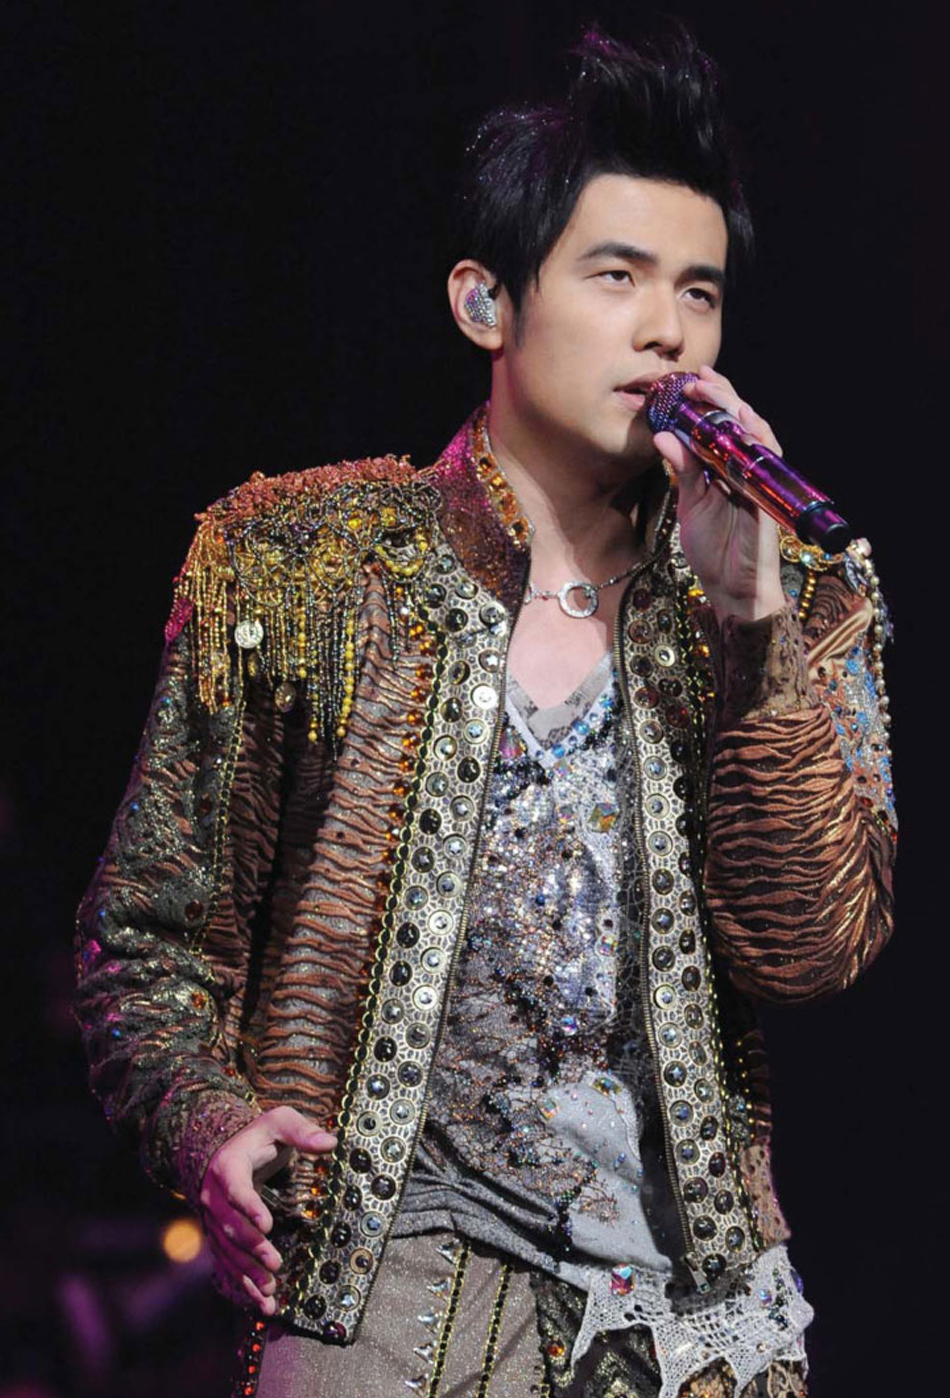 Shahrukh Khan Hd Wallpapers 2012 Jay Chou Hd Wallpapers High Definition Free Background